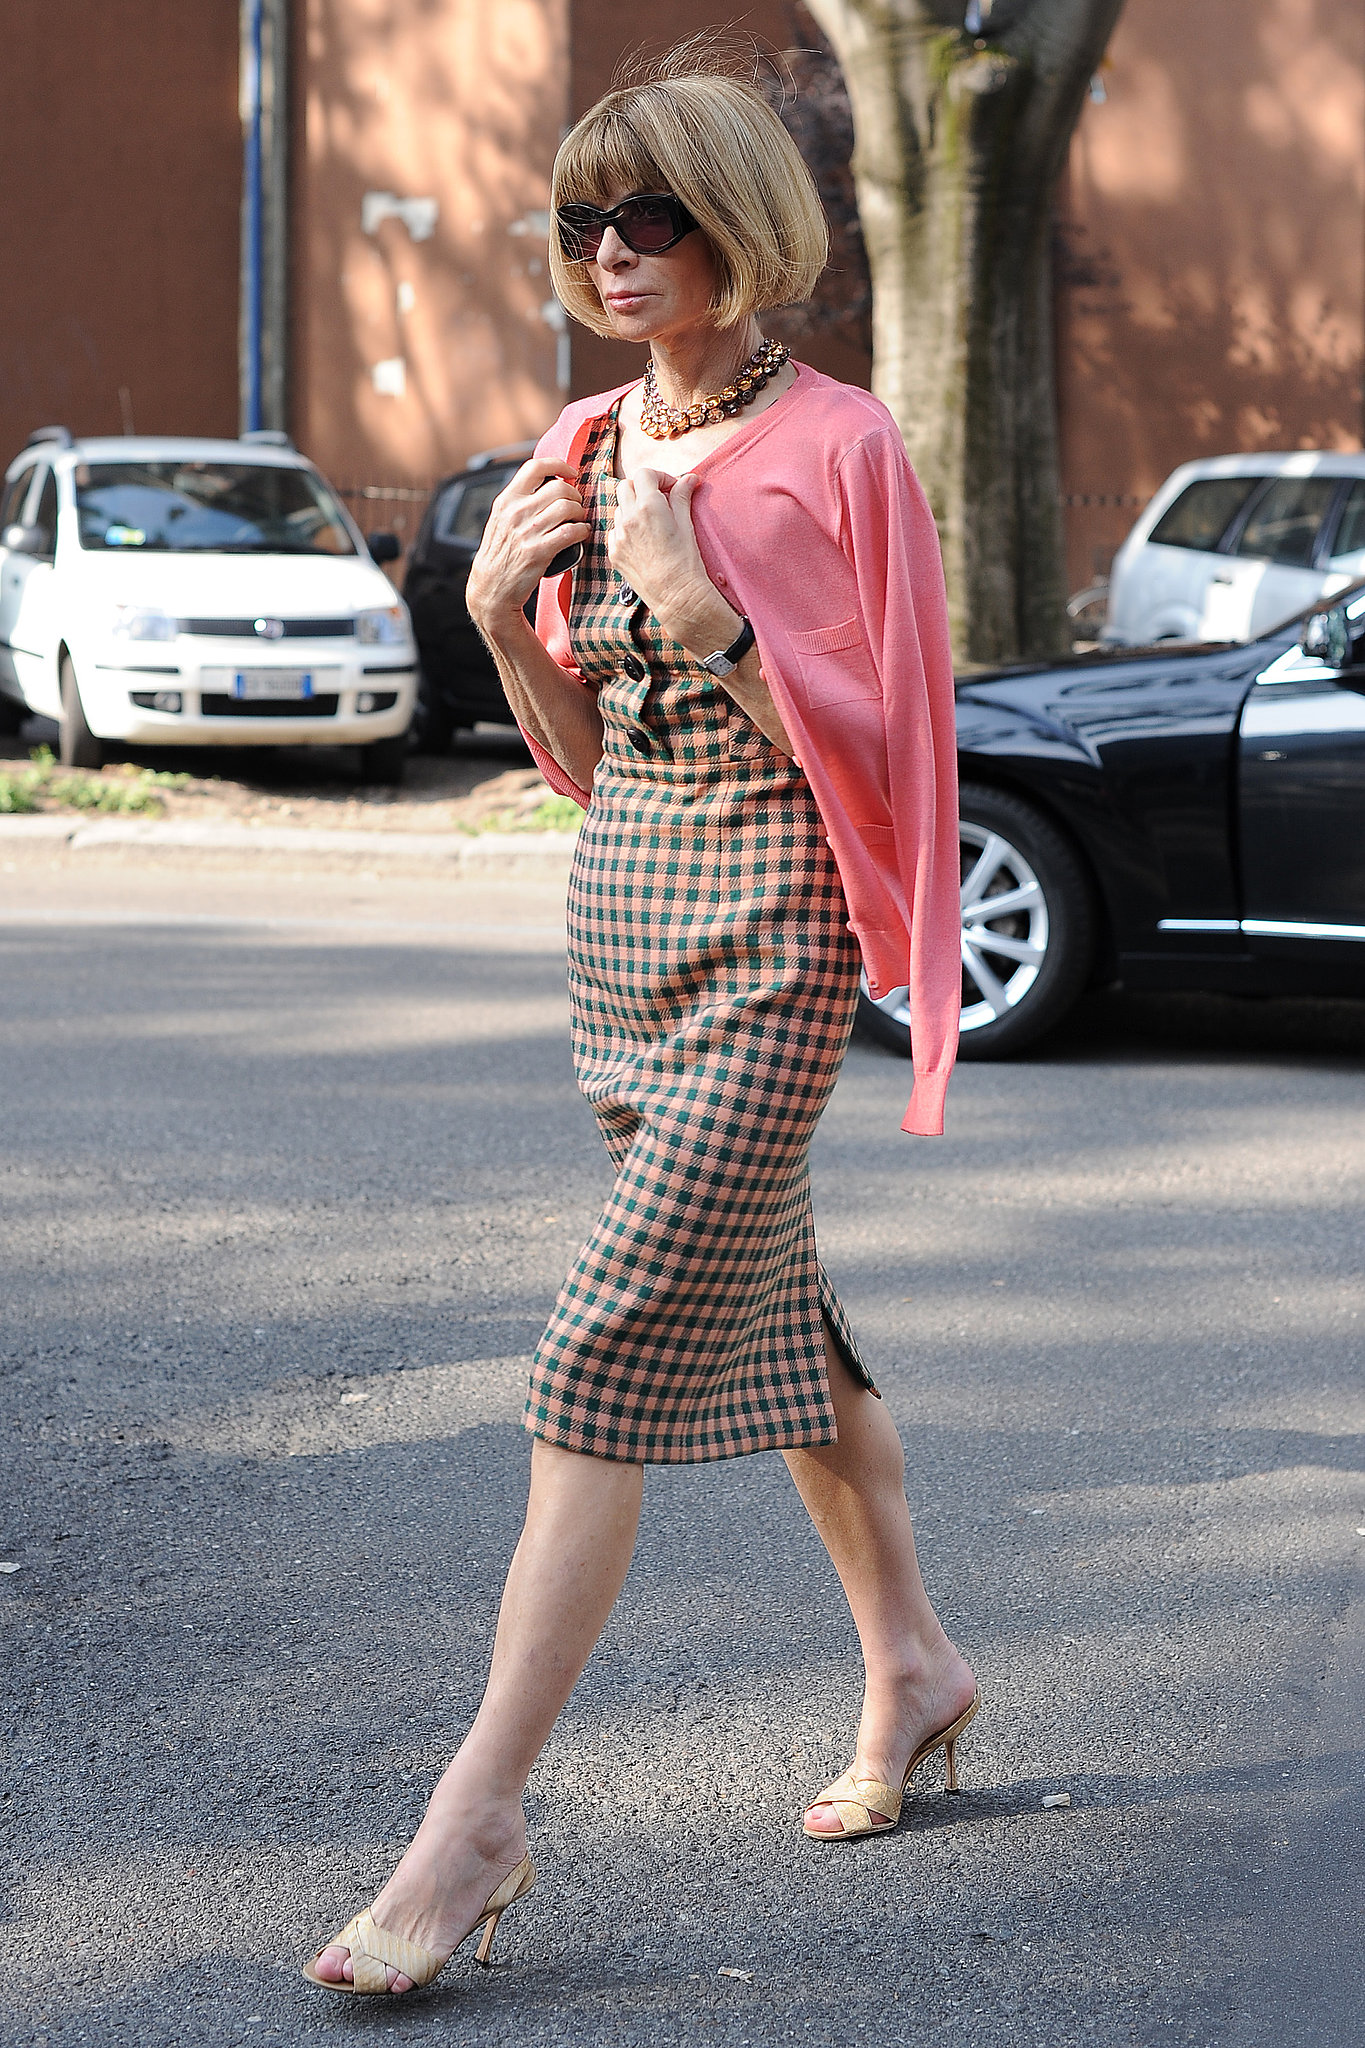 Another Day Another Slim Plaid Dress From Anna Wintour Street Style The Fashion Editor Edit